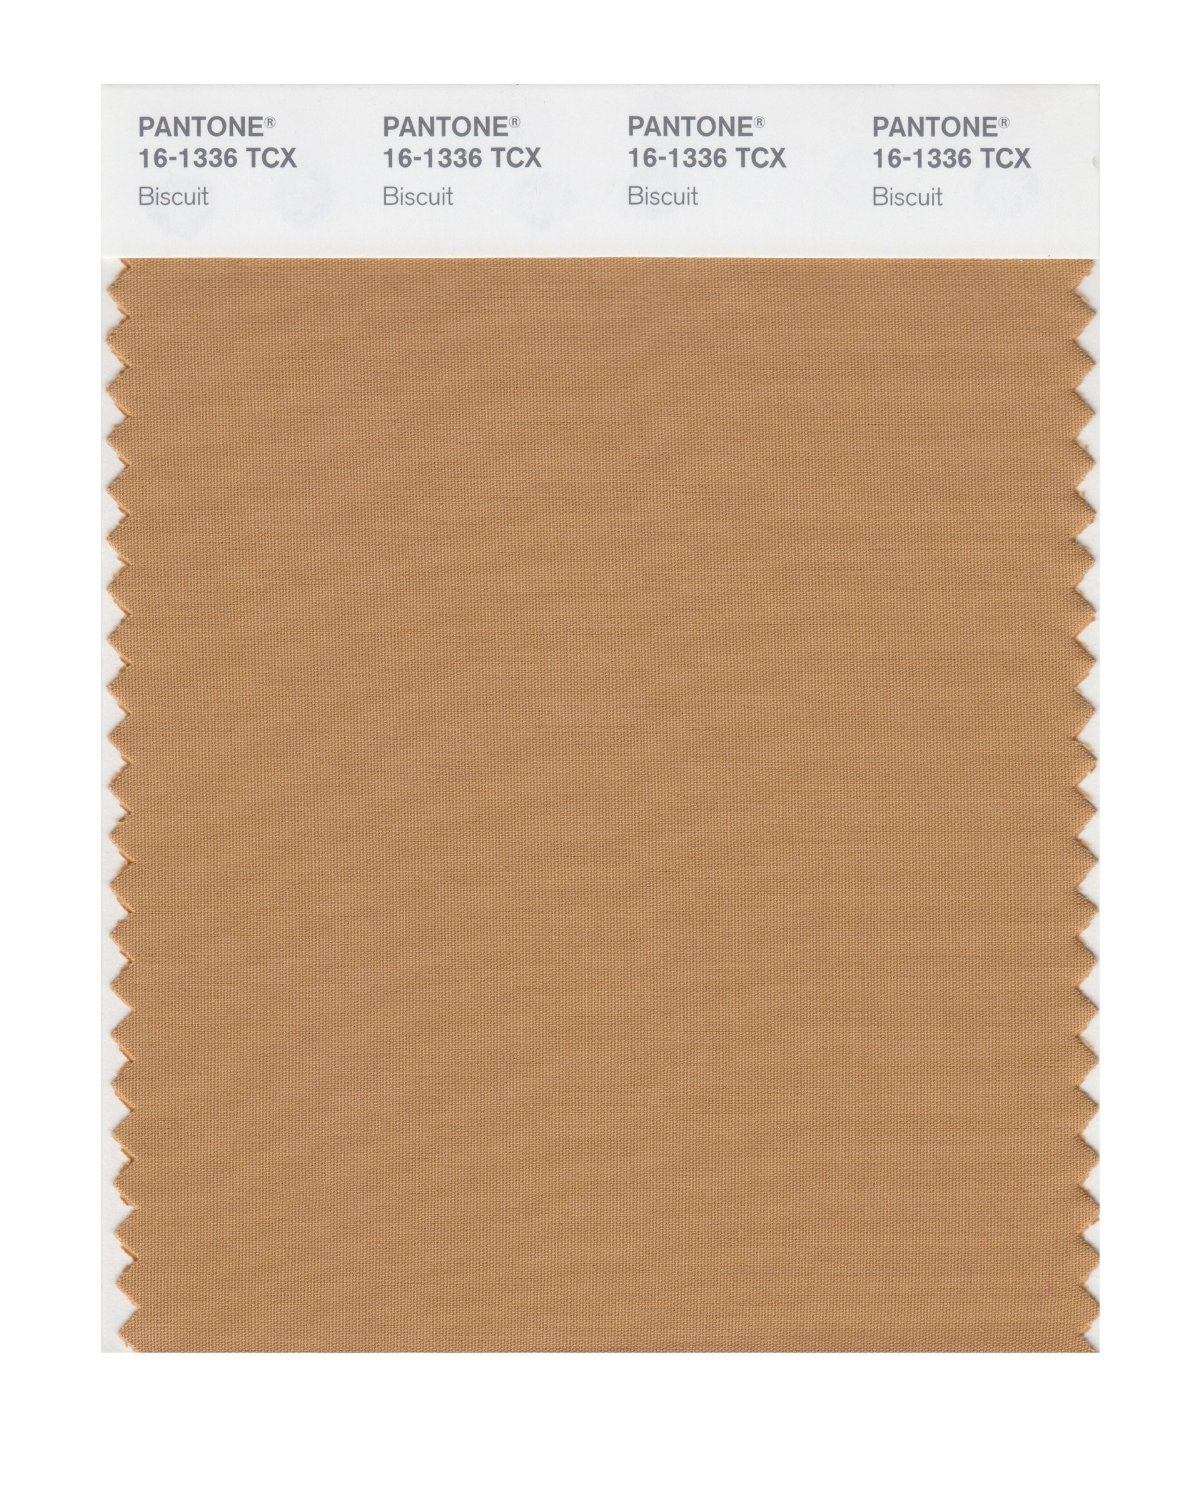 Pantone Smart Swatch 16-1336 Biscuit